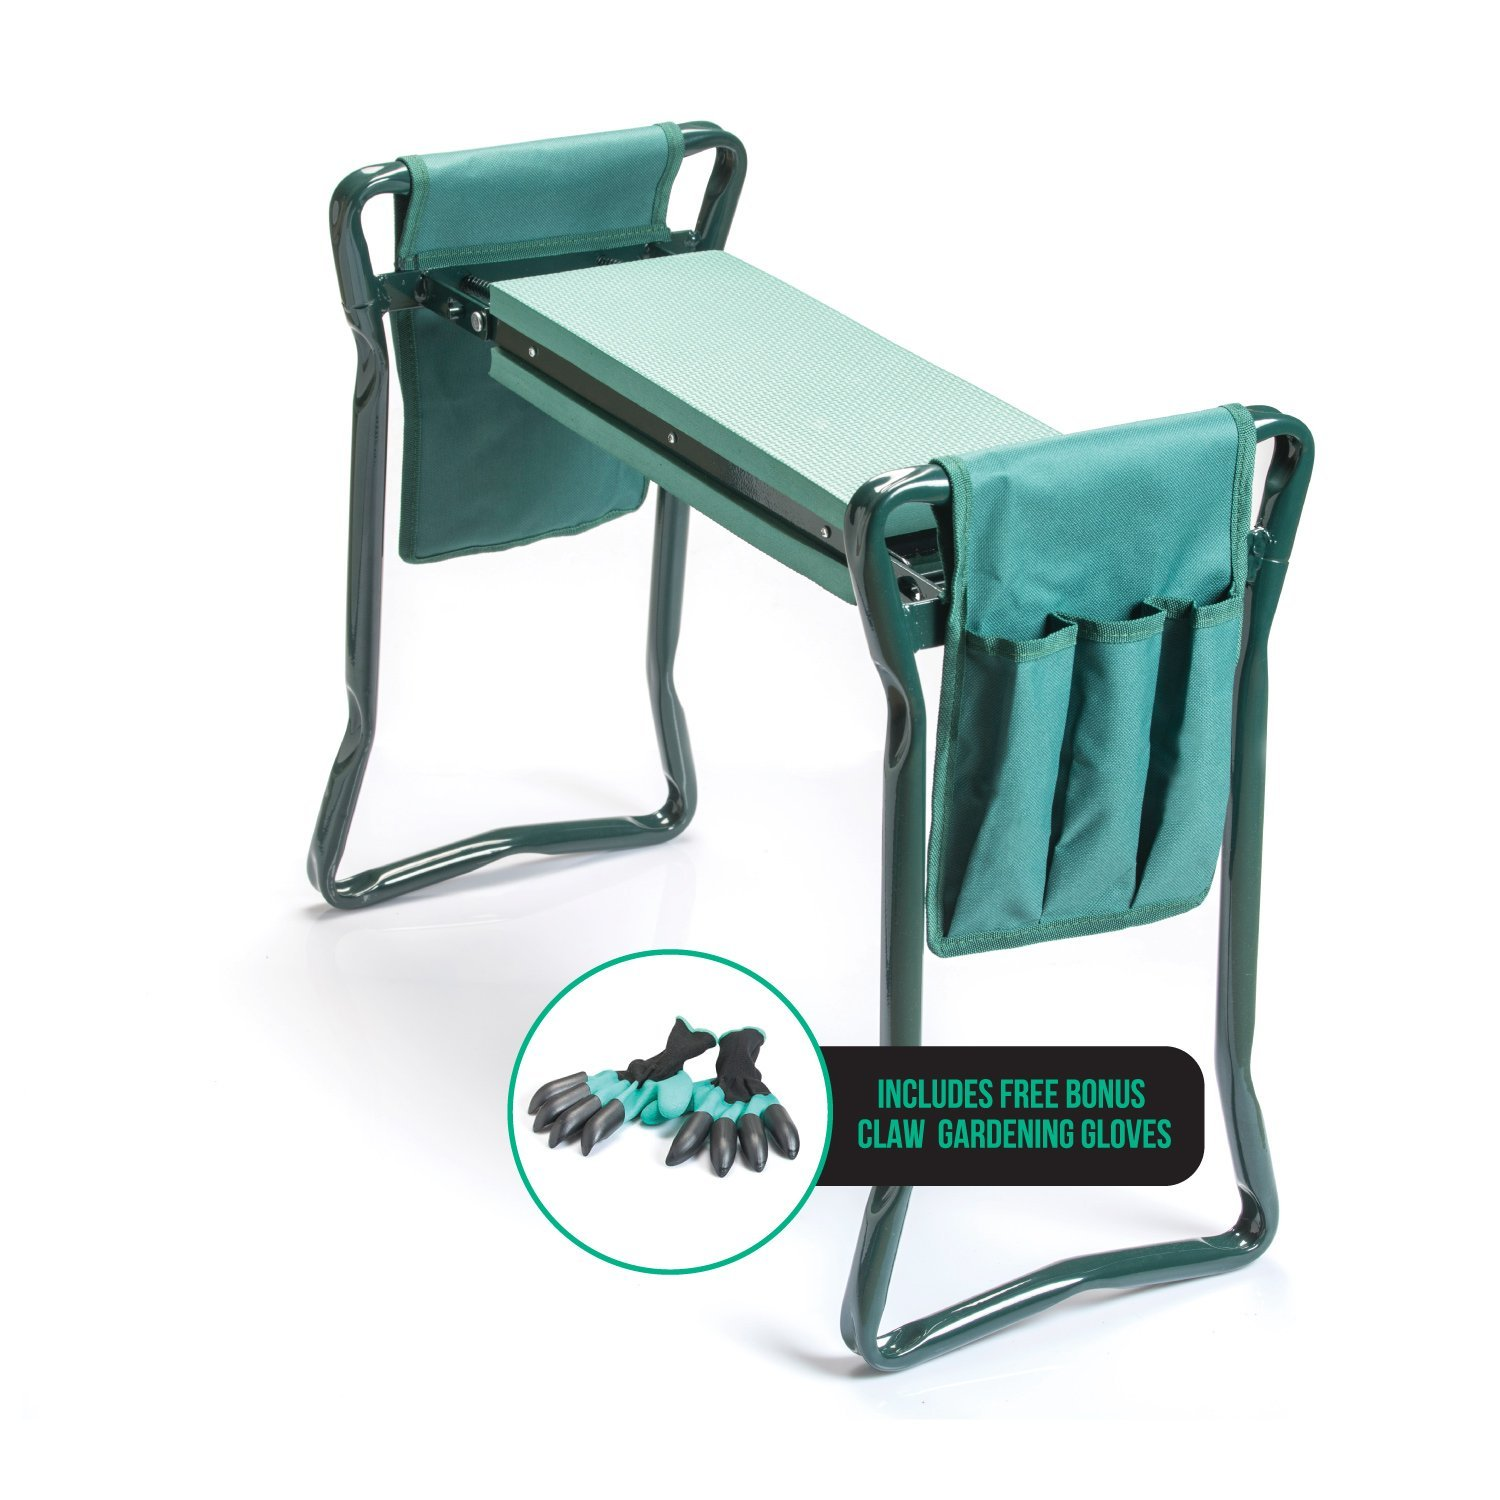 Haven Homes Garden Kneeler - Folding Seat & Kneeler with 2 Garden Tool Pouches + Free Bonus Gardening Gloves